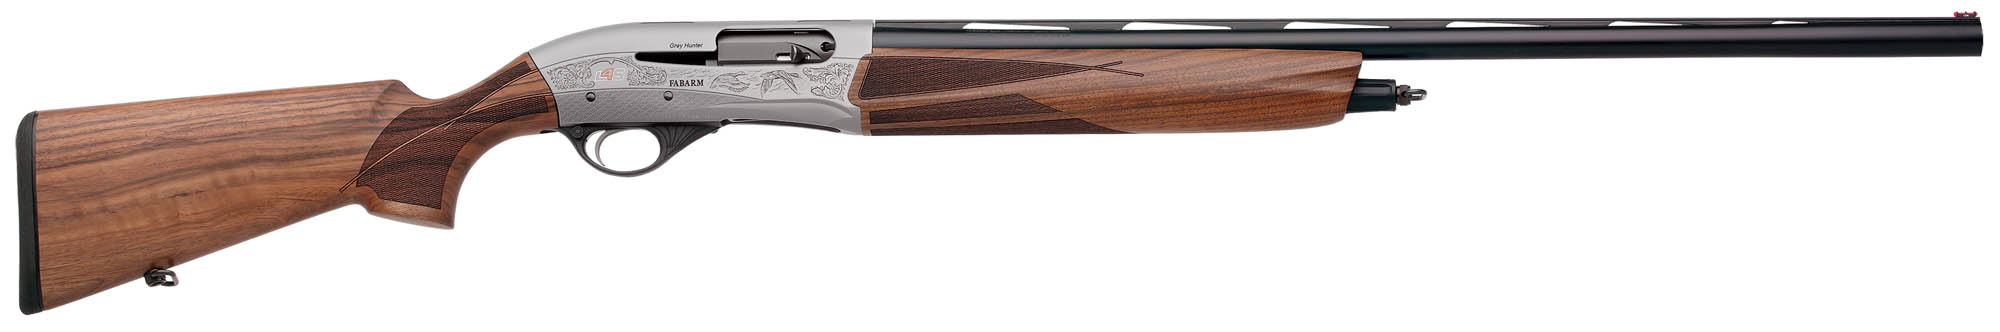 FA1720ECO-Fusil de chasse semi-automatique L4S Grey hunter - FA1720ECO